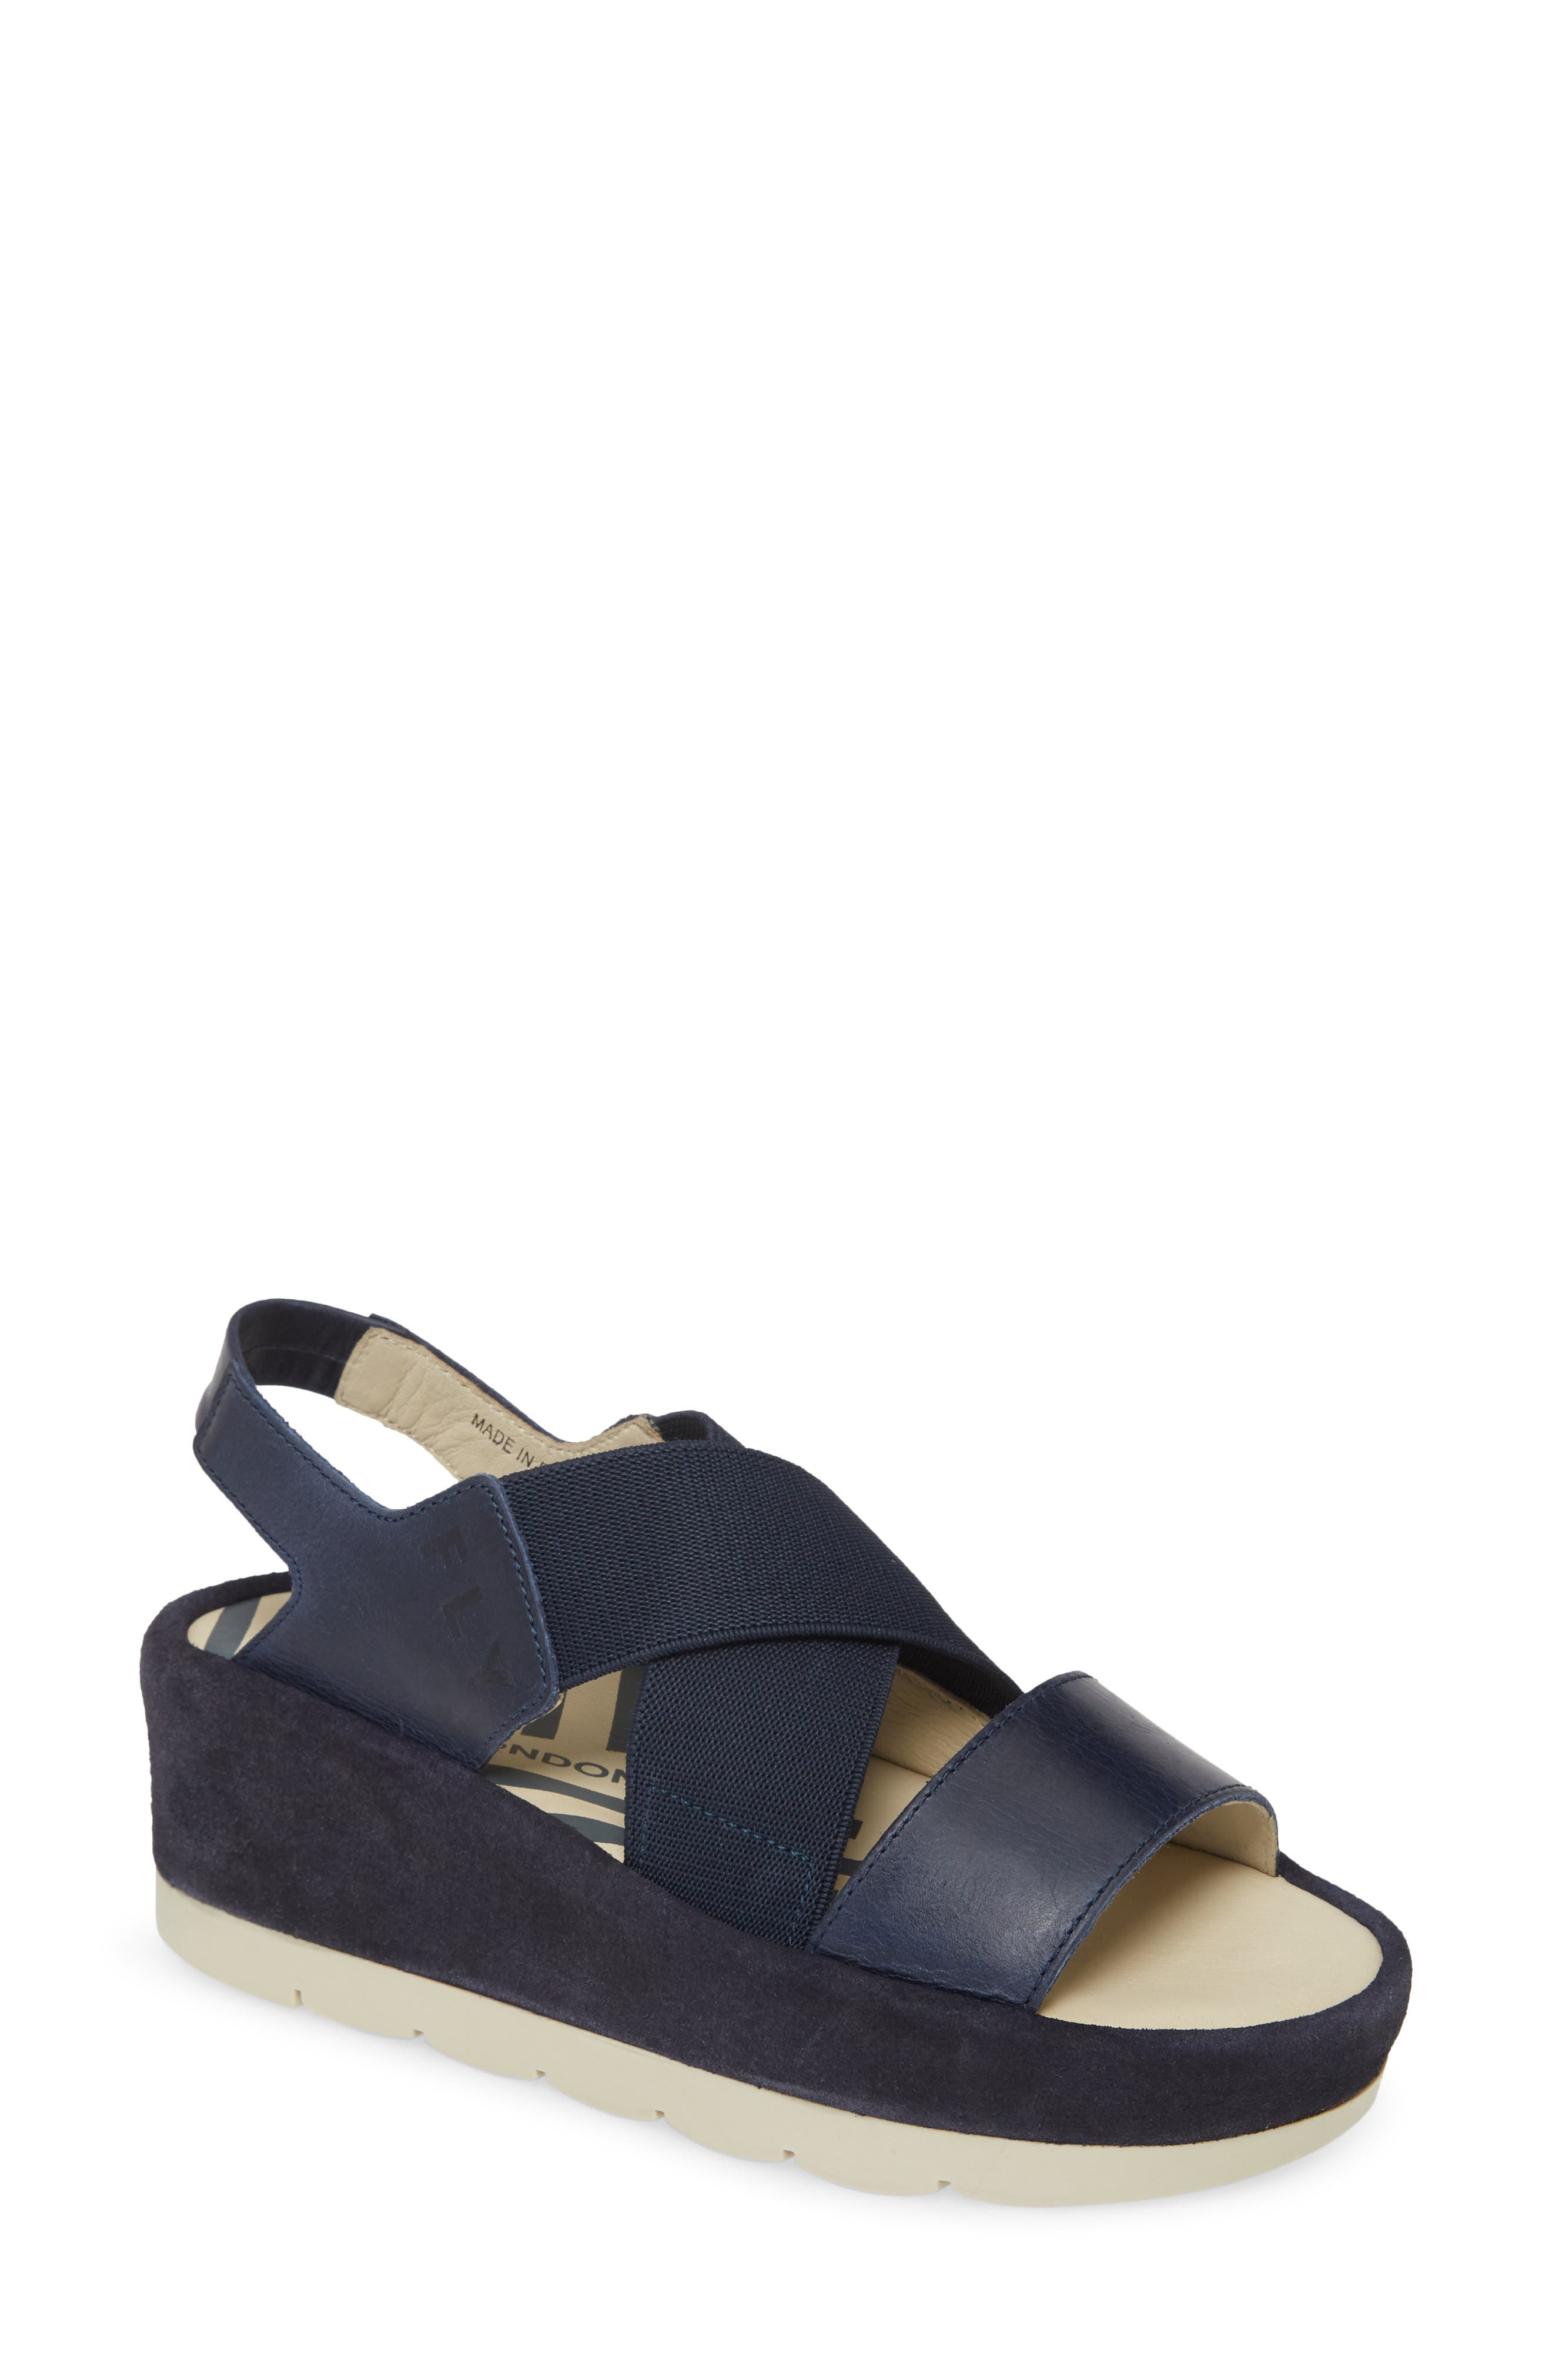 Wide elastic straps crisscross at the top of a slingback sandal lifted by a stable one-piece wedge and platform. Style Name: Fly London Bime Wedge Sandal (Women). Style Number: 6002359. Available in stores.